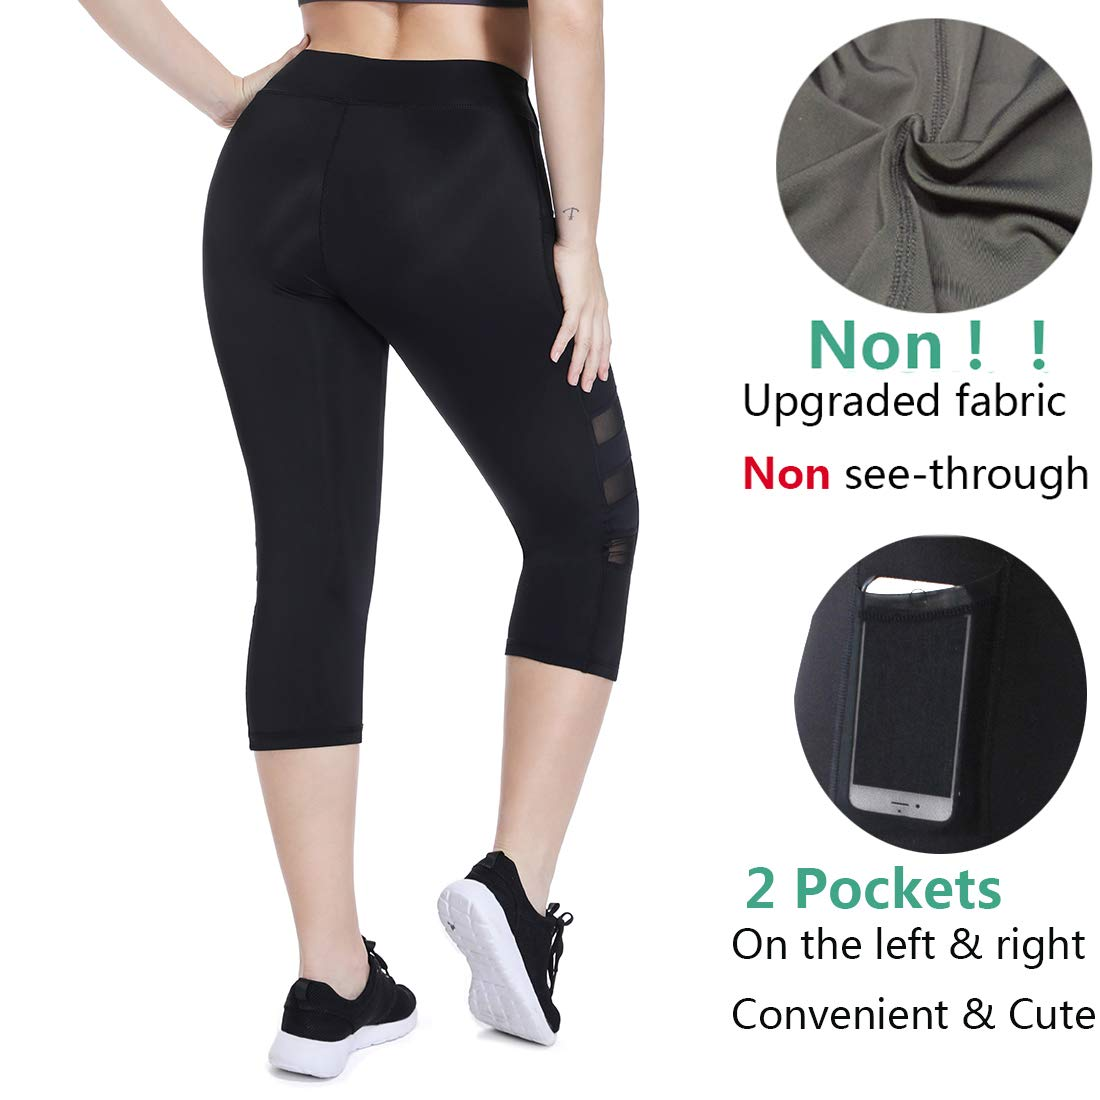 084e076f568 Gym Trousers for Women with Pocket High Waisted Mesh Leggings Yoga Pants  Capri Workout Tights at Amazon Women s Clothing store